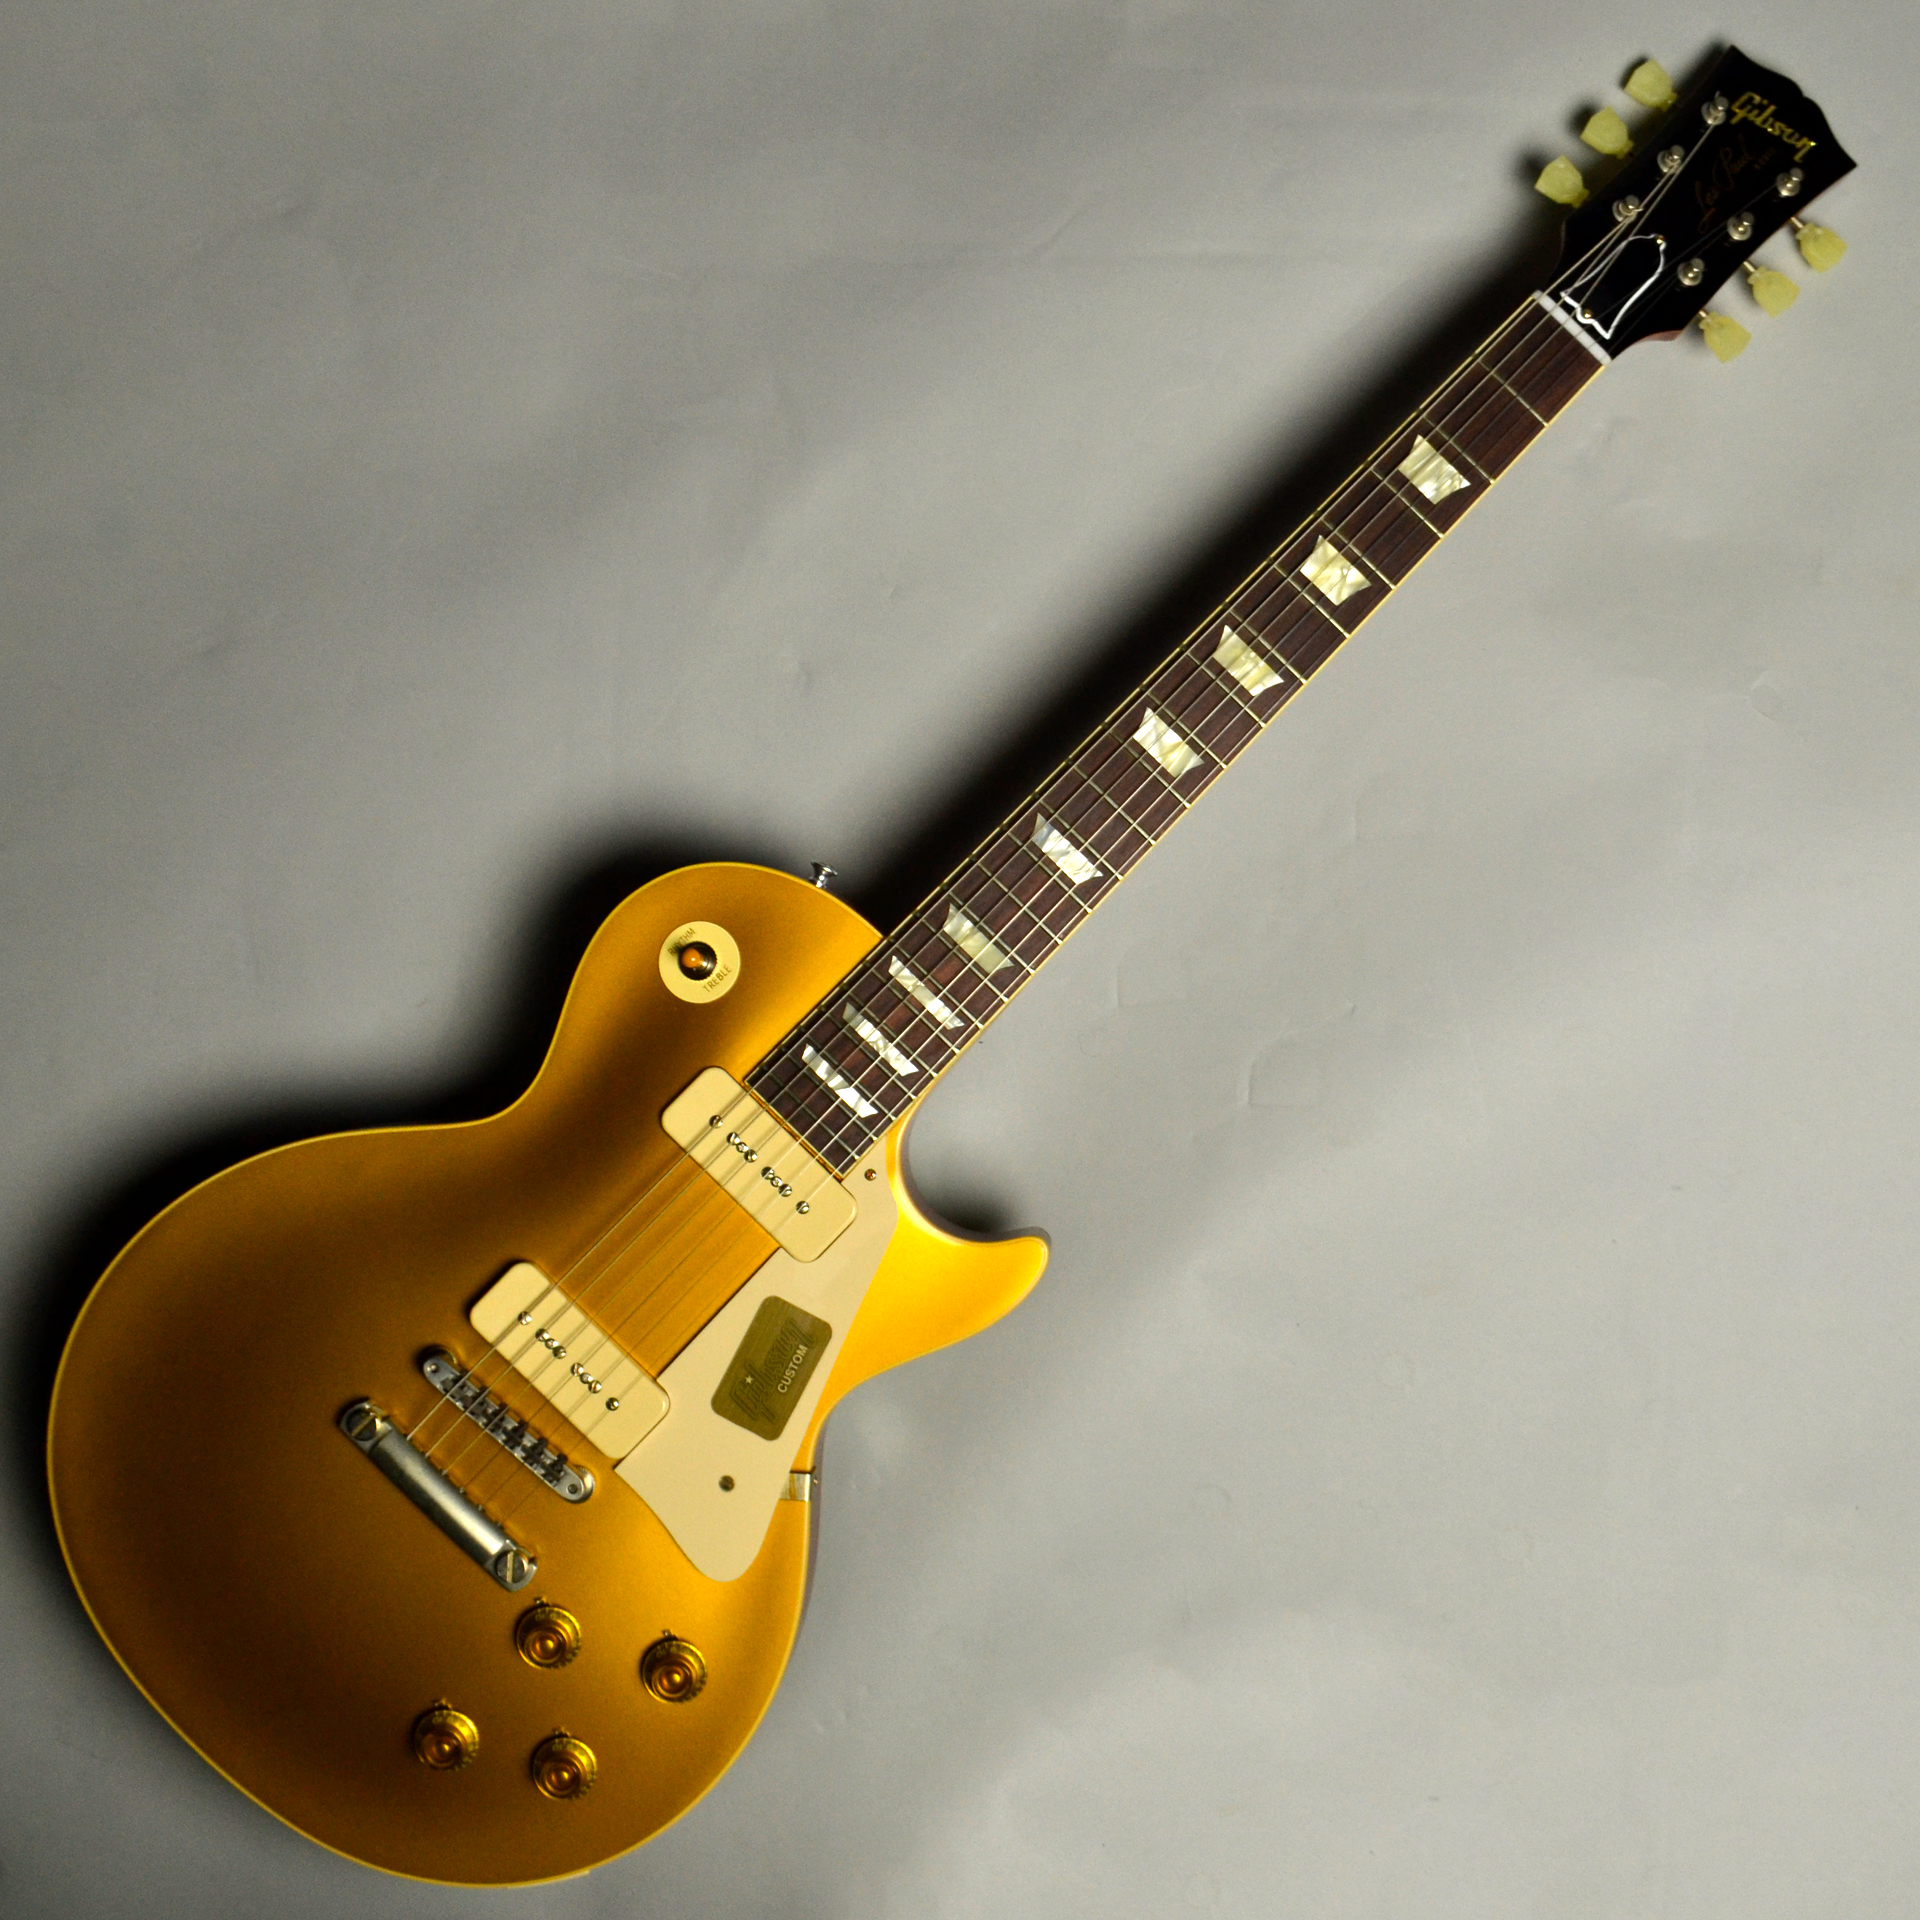 1956 Les Paul Standard Reissue VOS PSL Antique Gold